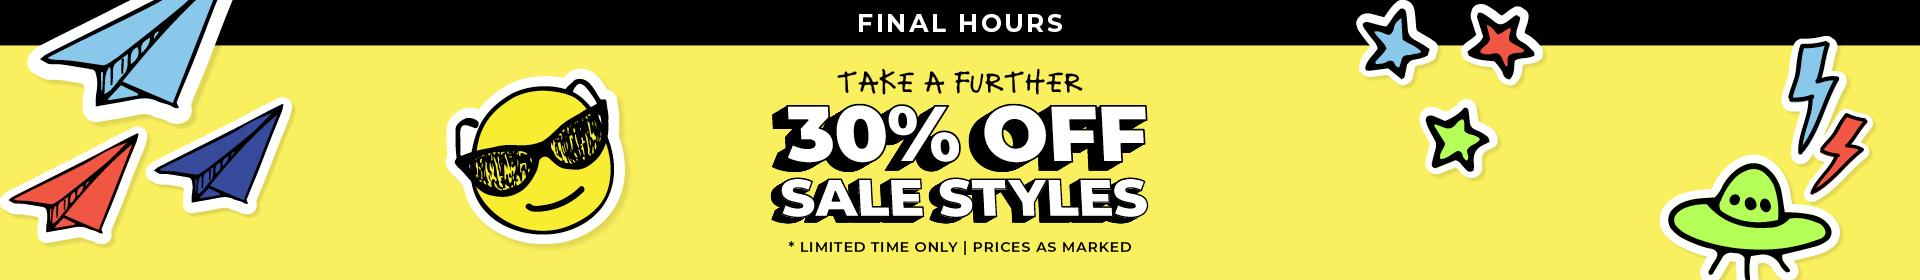 Take a Further 30% Off Sale | The Trybe | Limited Time Only | While Stocks Last